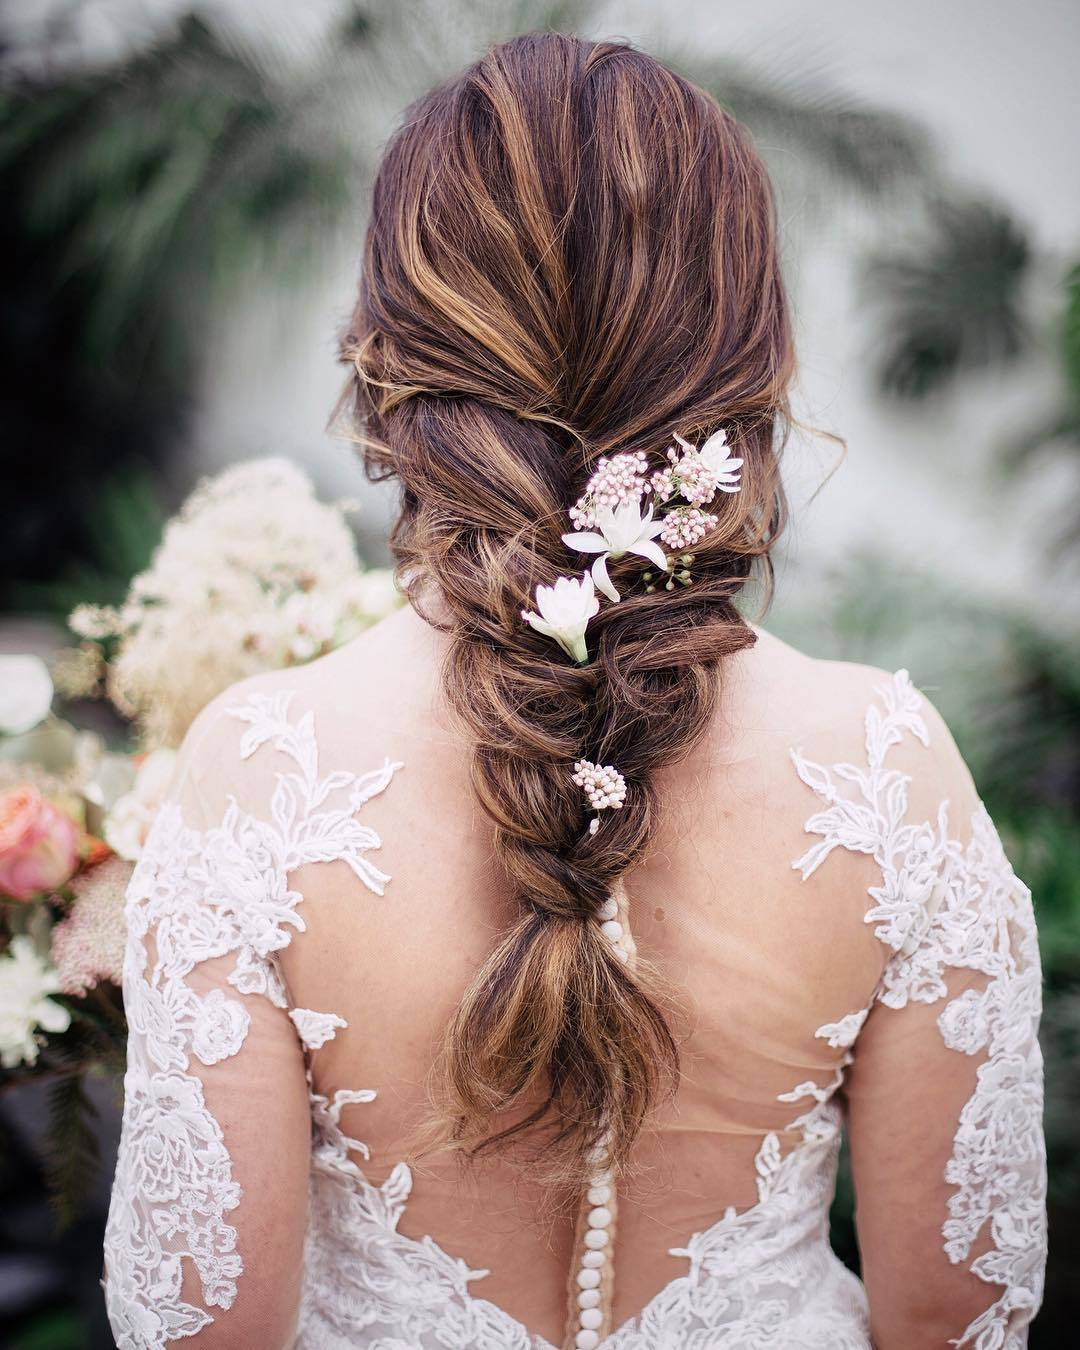 Braid Hairstyles For Wedding Party: 47 Stunning Wedding Hairstyles All Brides Will Love